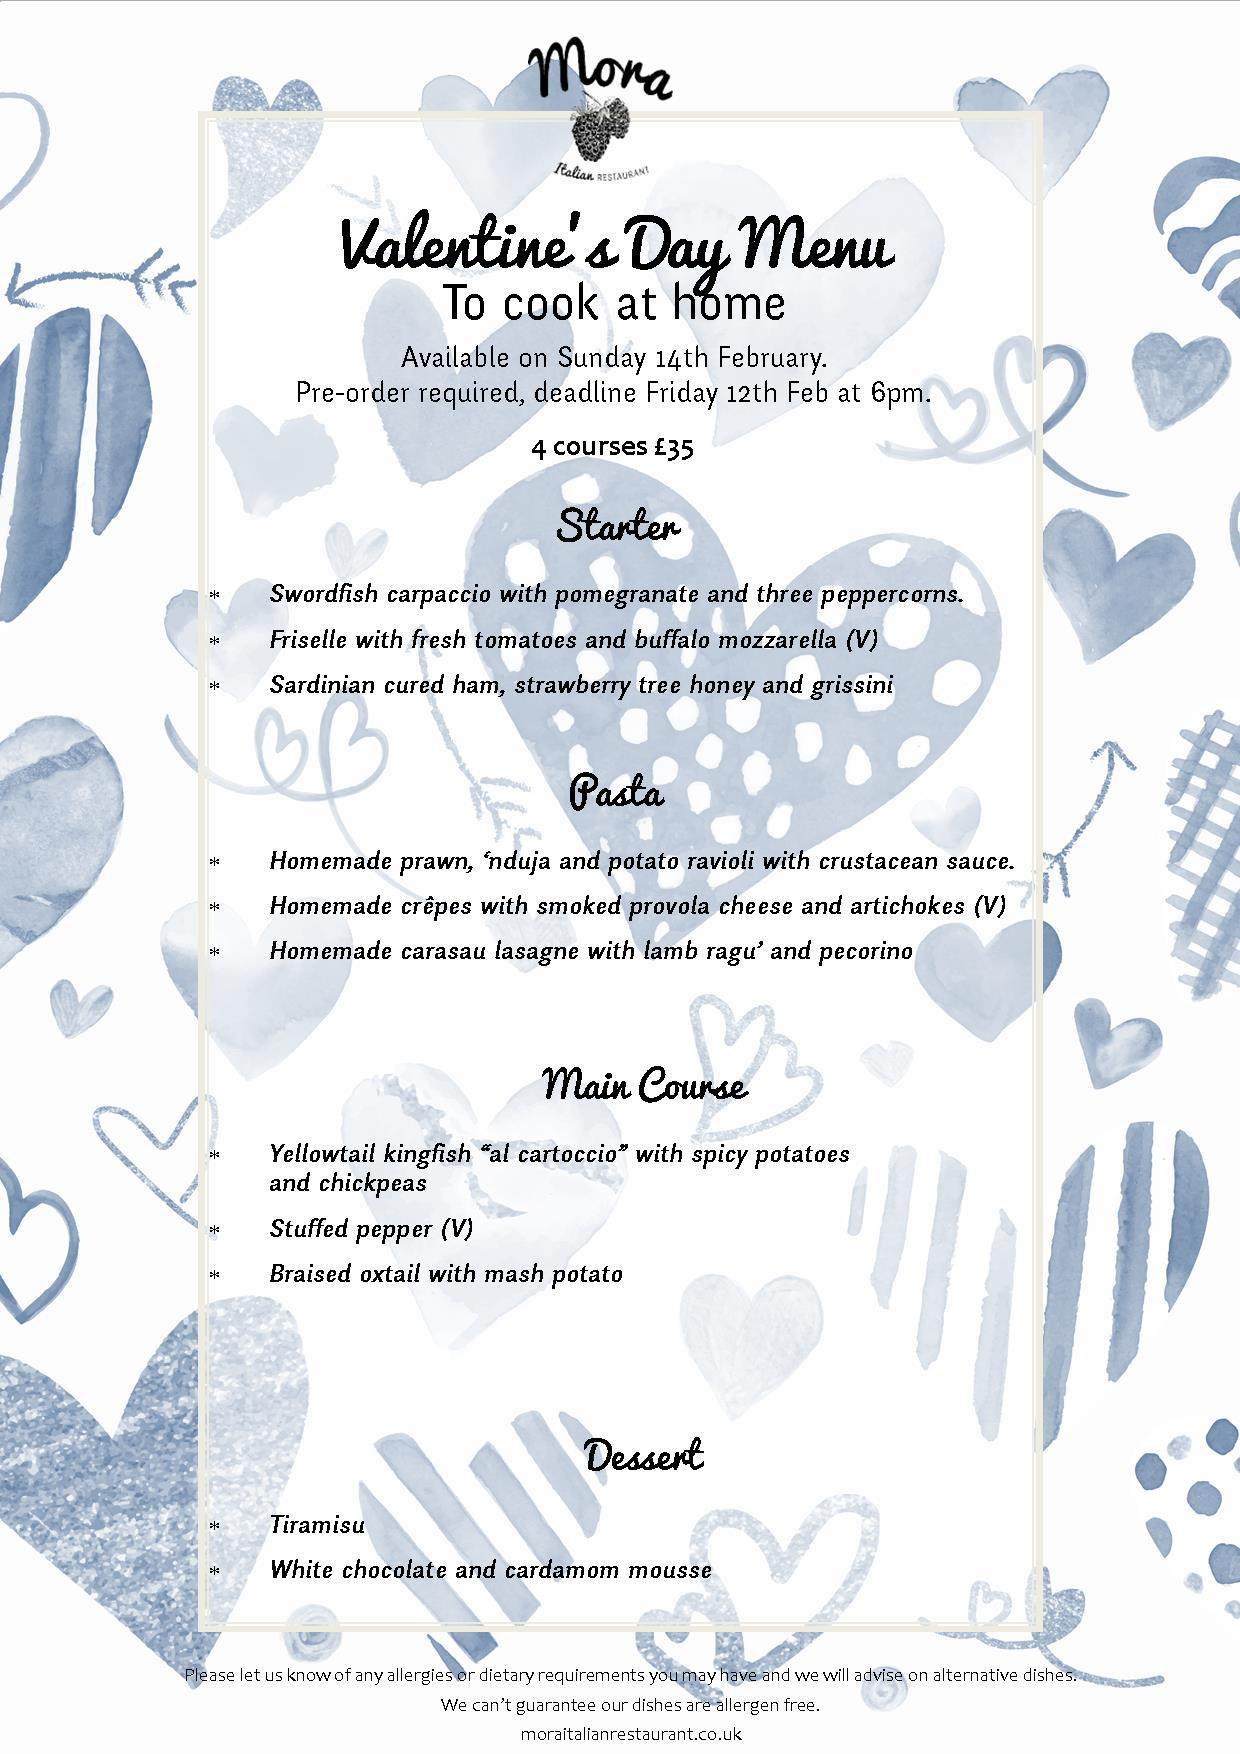 01. Valentine's Day Menu at Home